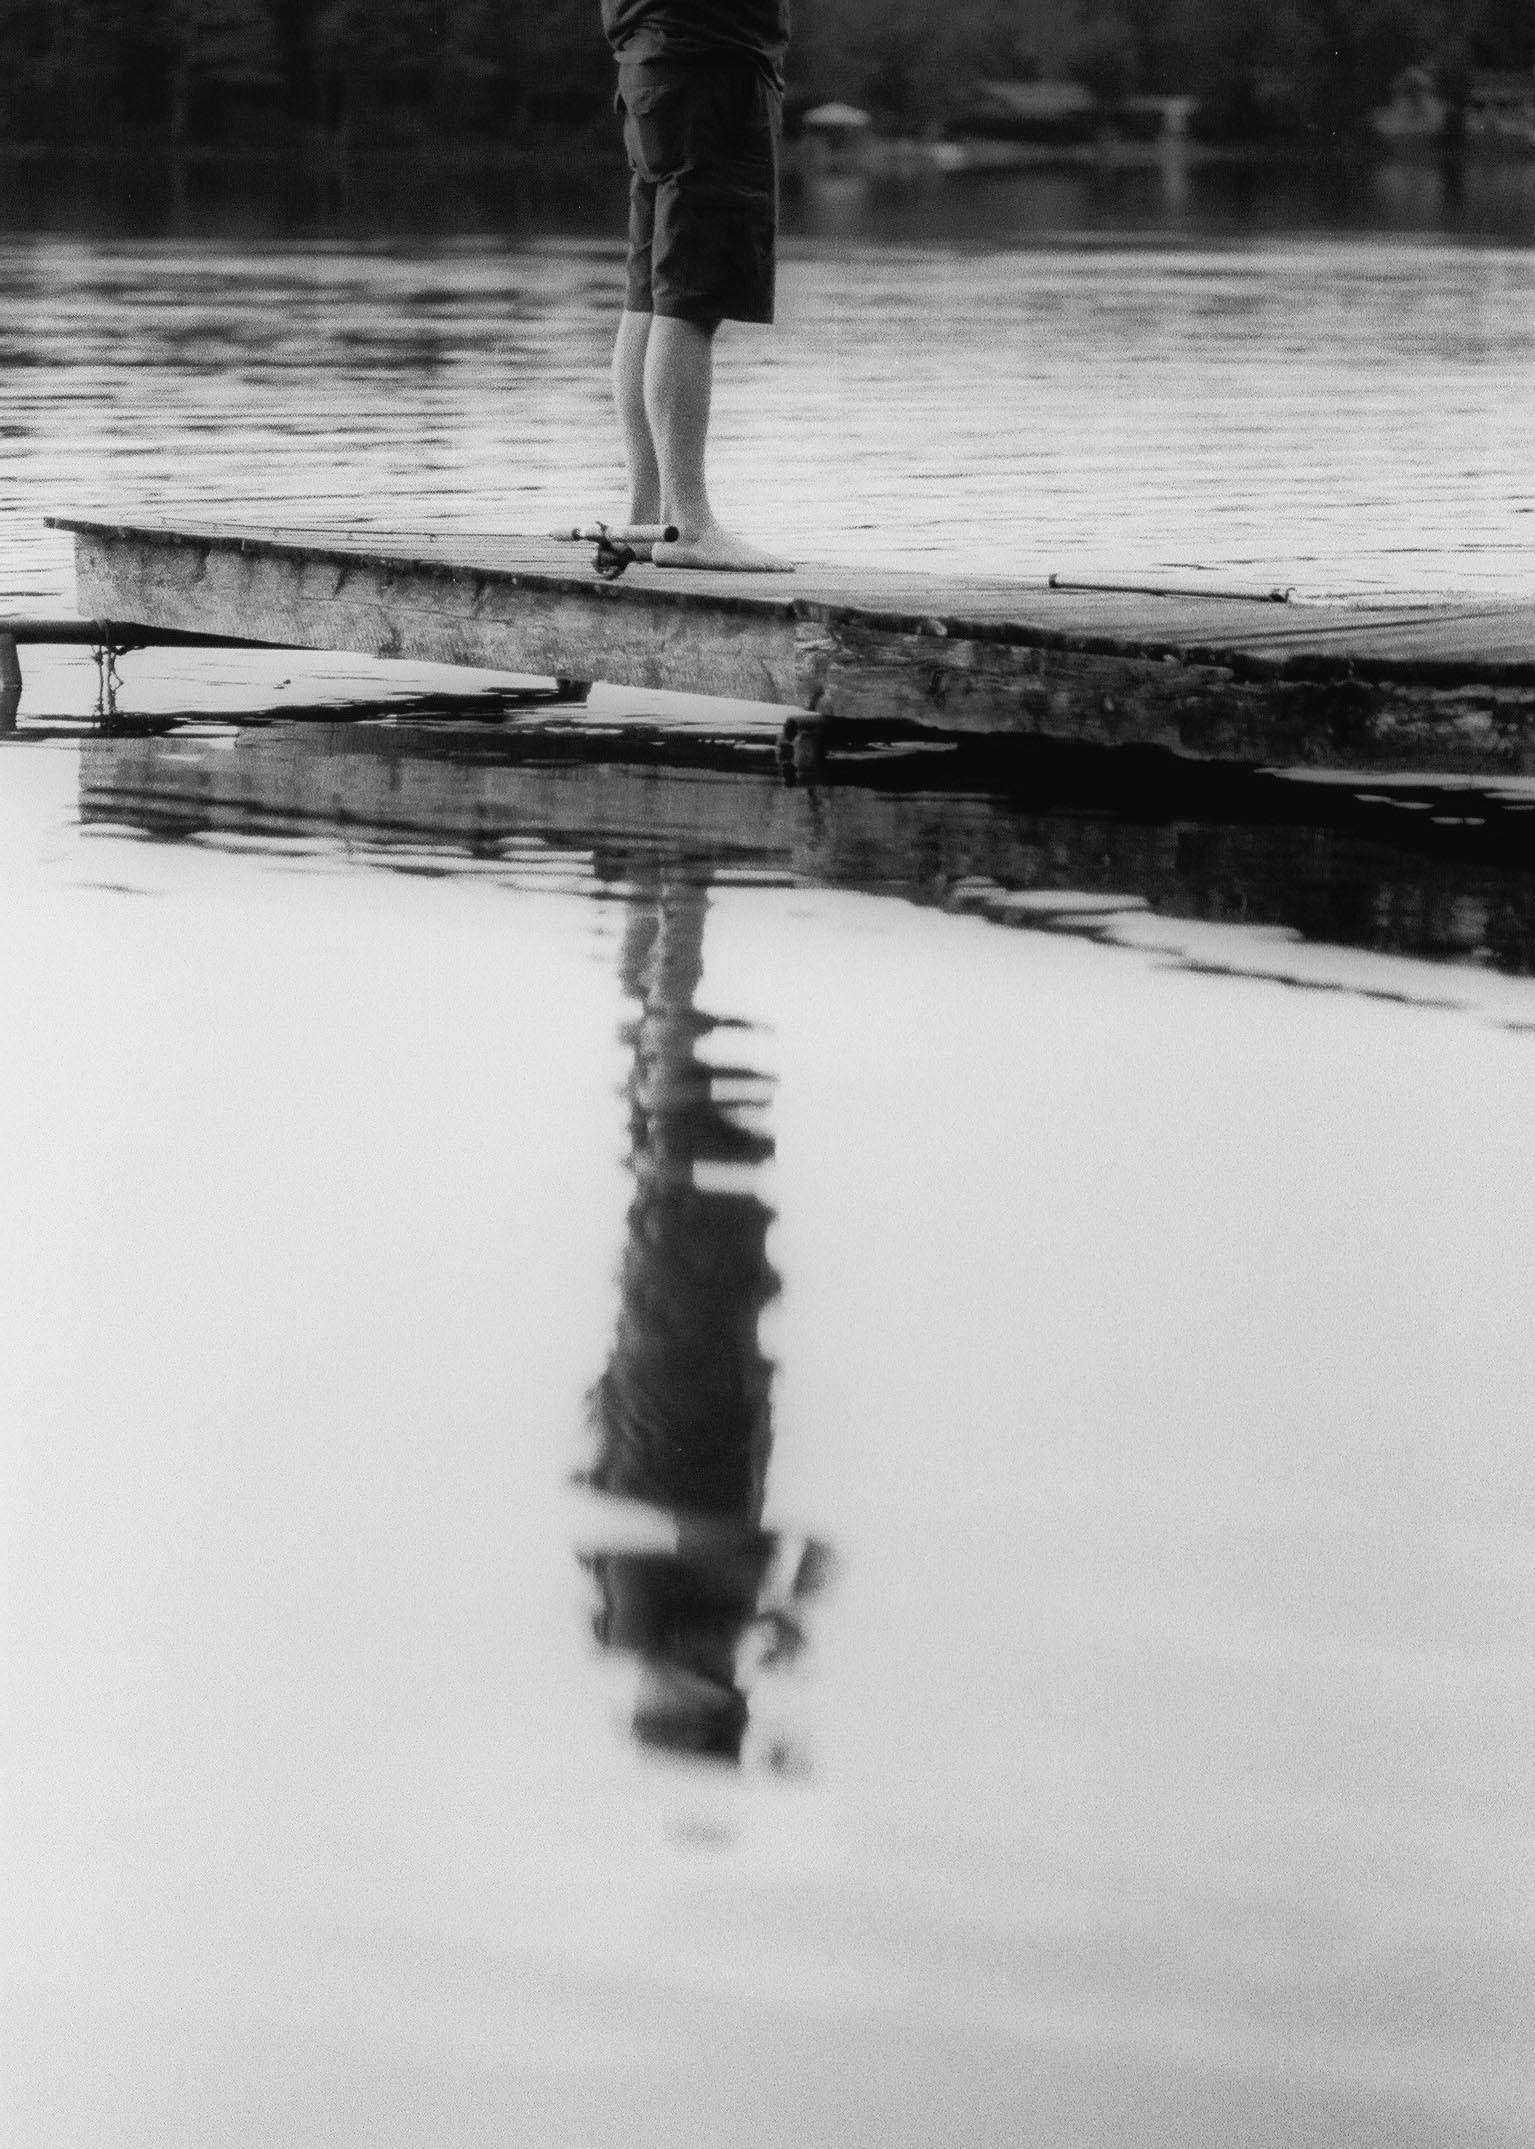 Troy standing on a quay at his friend's cottage. July 2017